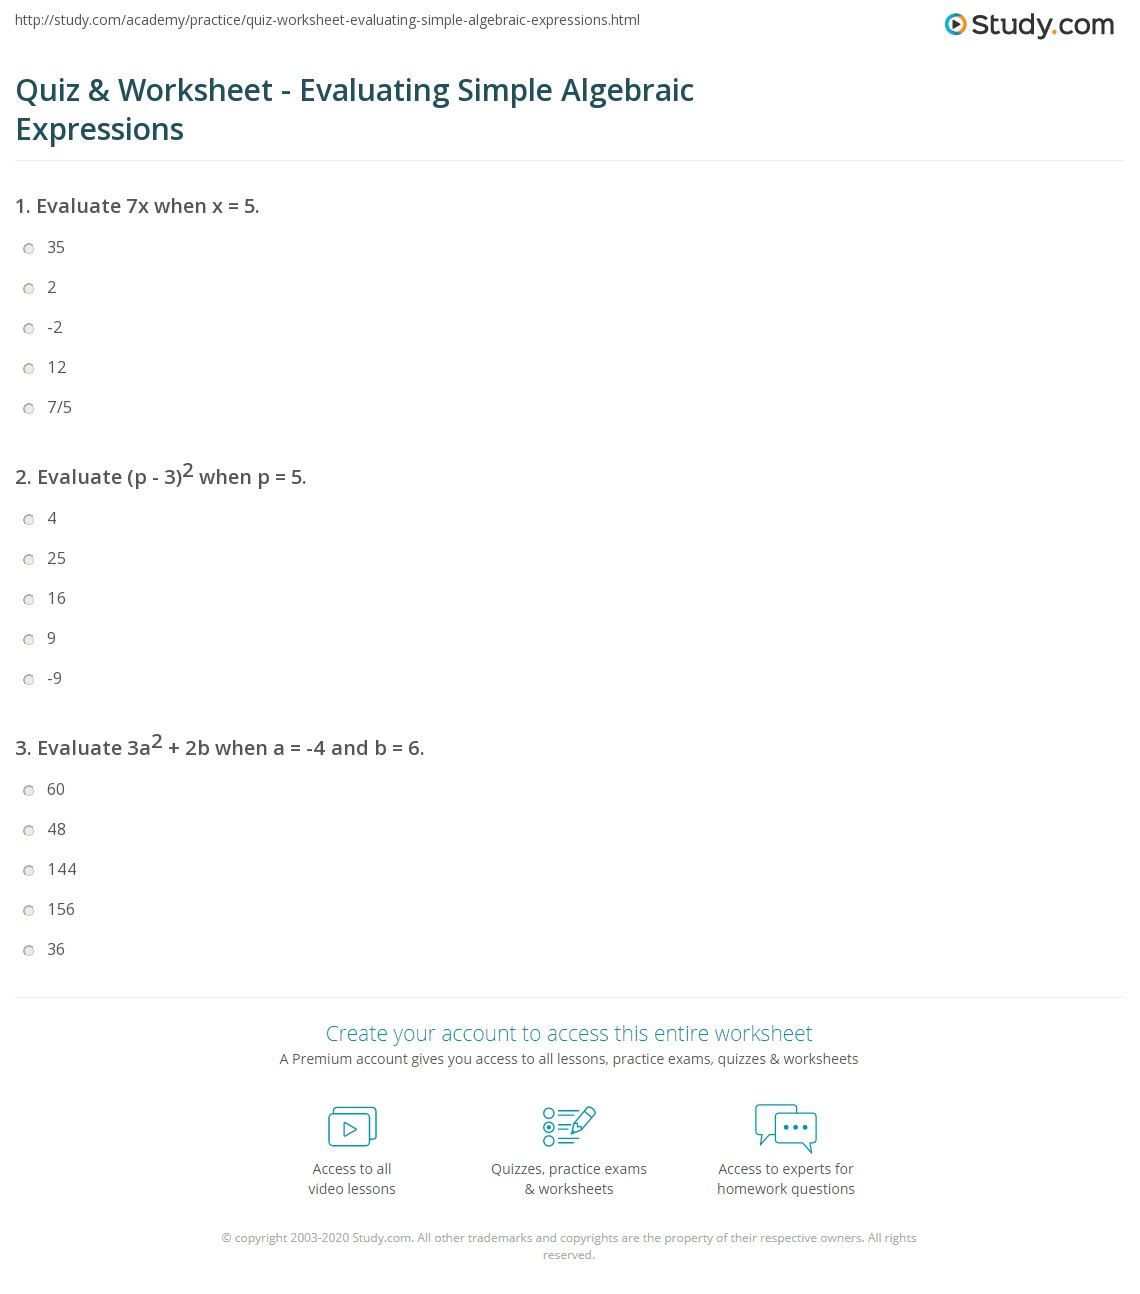 Printables Evaluating Algebraic Expressions Worksheets quiz worksheet evaluating simple algebraic expressions study com print worksheet